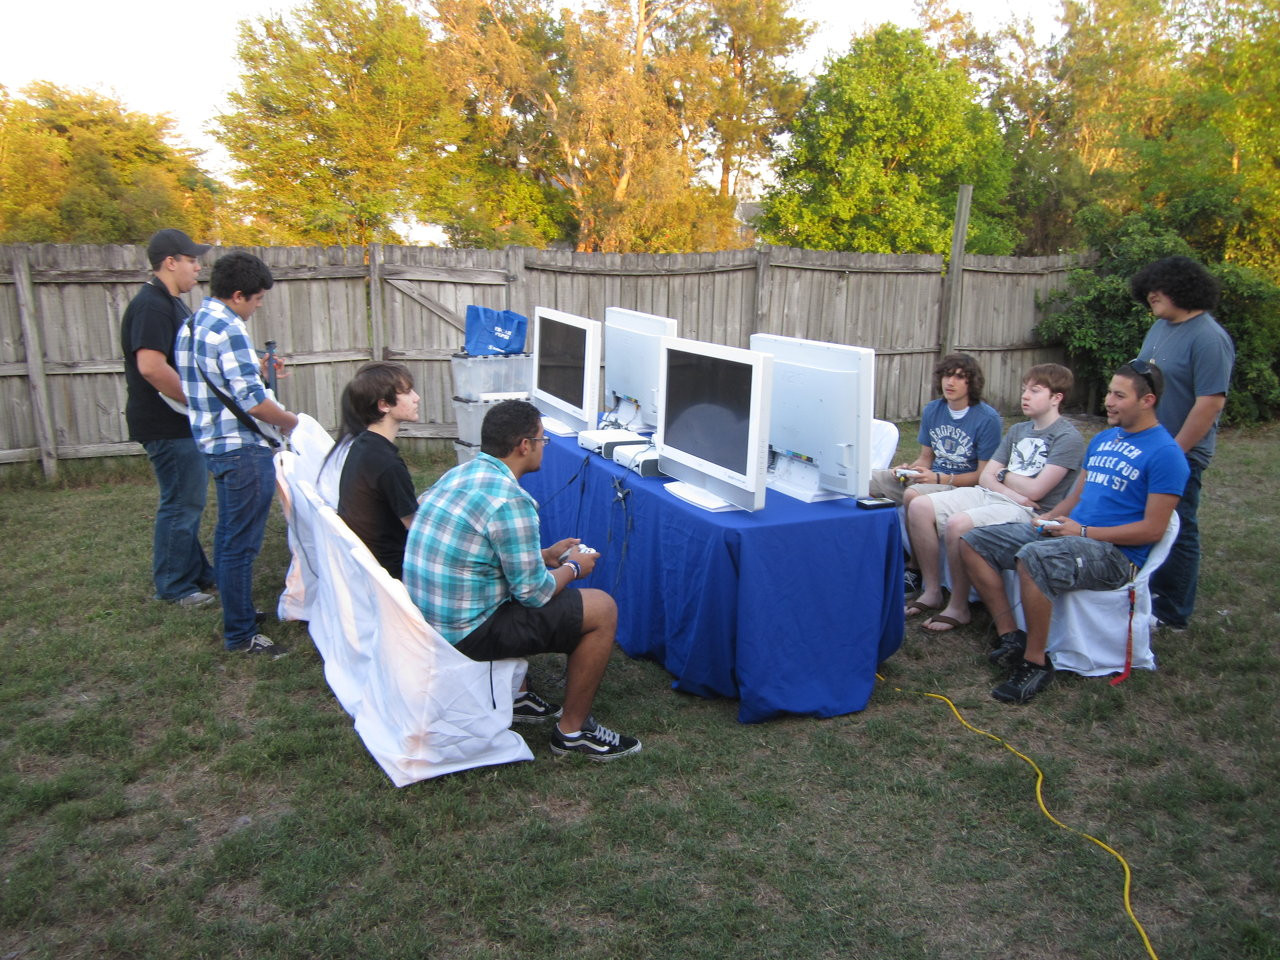 Outdoor 16 Player Video Game Party